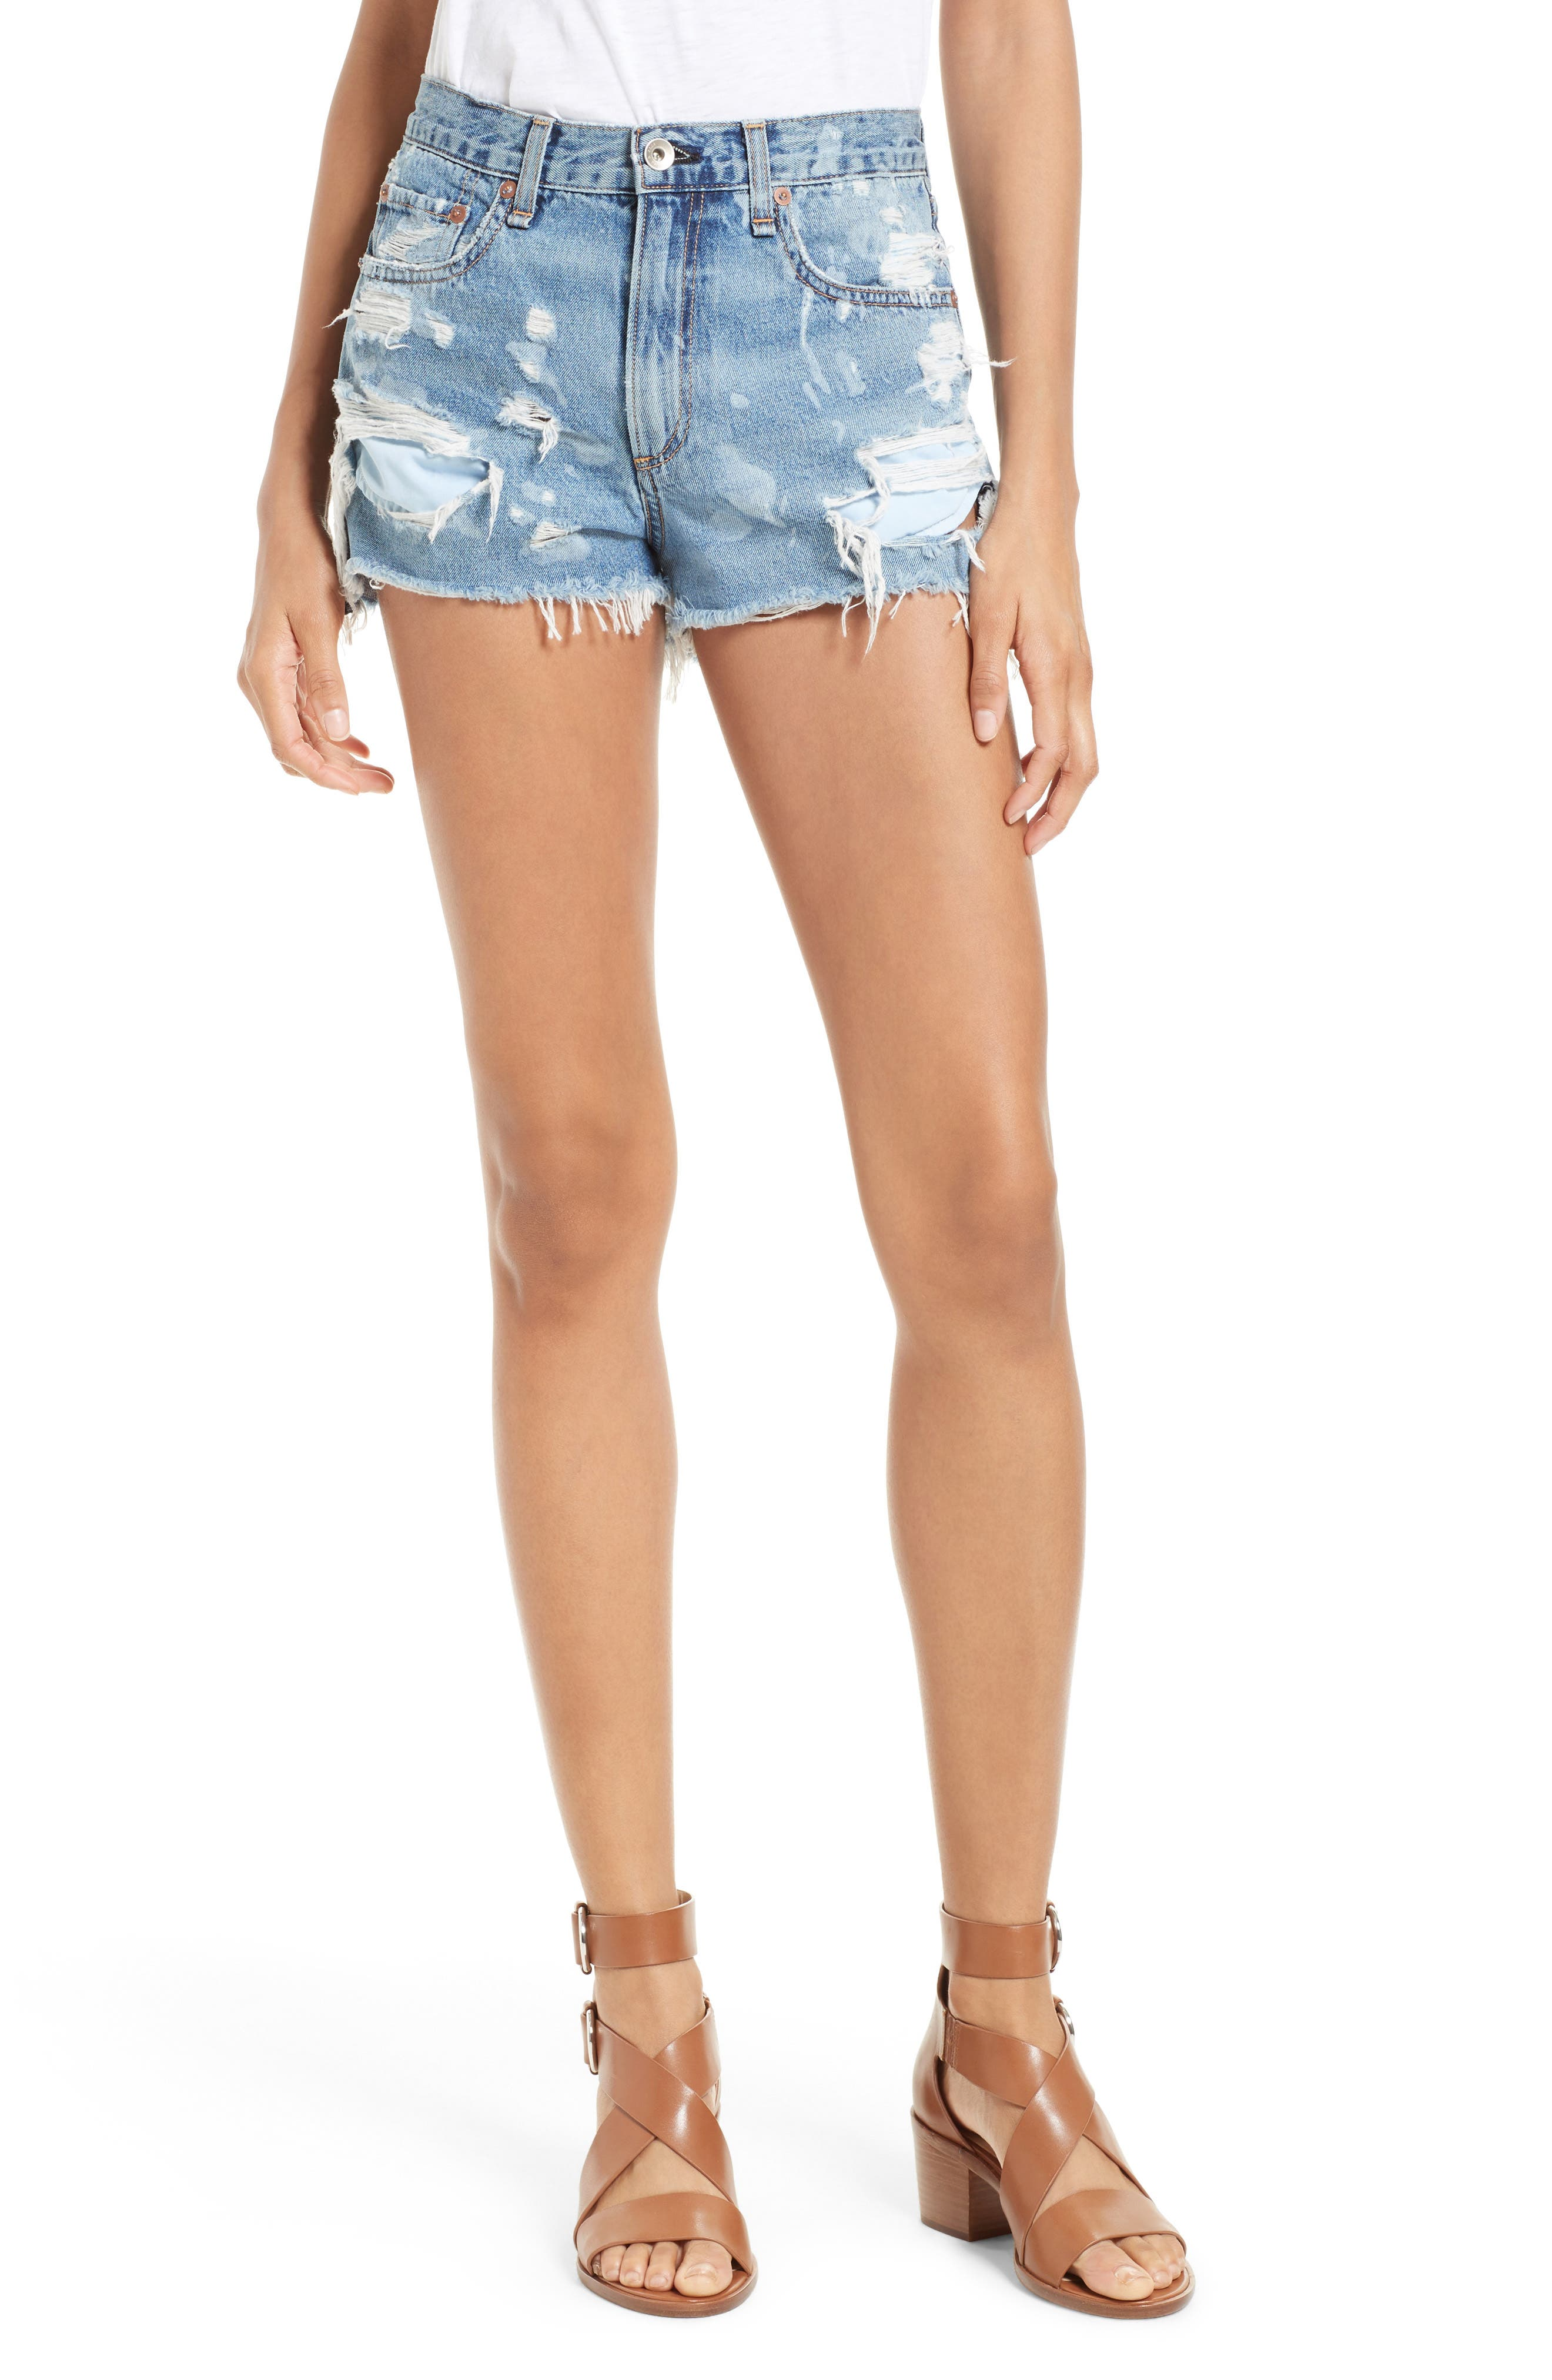 Justine High Waist Cutoff Denim Shorts,                             Main thumbnail 1, color,                             422